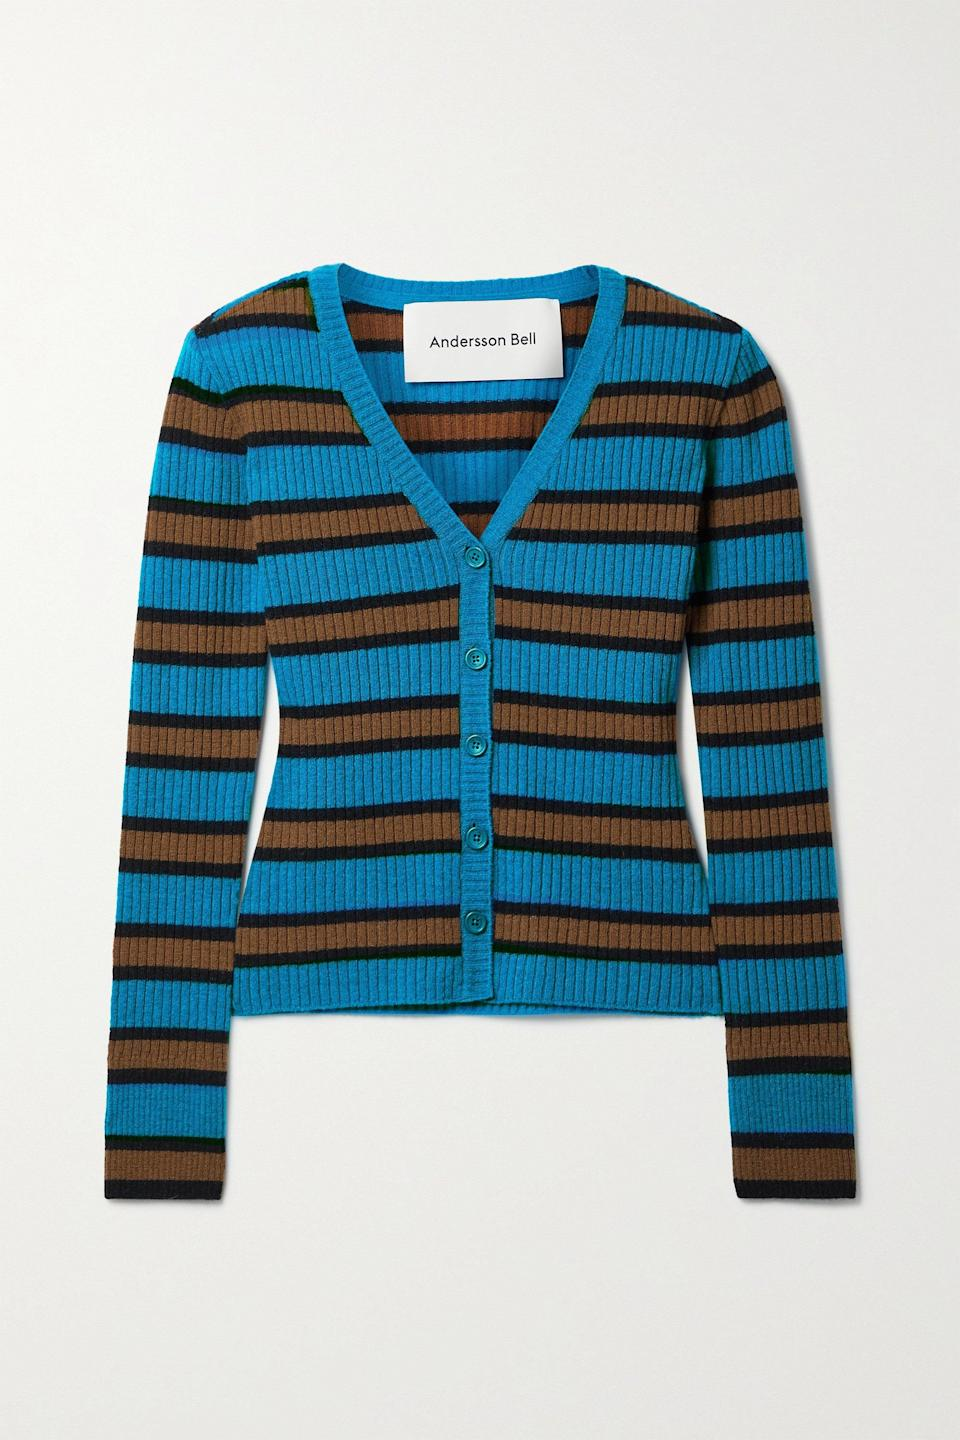 """<br><br><strong>Andersson Bell</strong> Ribbed Striped Cardigan, $, available at <a href=""""https://go.skimresources.com/?id=30283X879131&url=https%3A%2F%2Fwww.net-a-porter.com%2Fen-us%2Fshop%2Fproduct%2Fandersson-bell%2Fribbed-striped-wool-blend-cardigan%2F1300049"""" rel=""""nofollow noopener"""" target=""""_blank"""" data-ylk=""""slk:Net-A-Porter"""" class=""""link rapid-noclick-resp"""">Net-A-Porter</a>"""